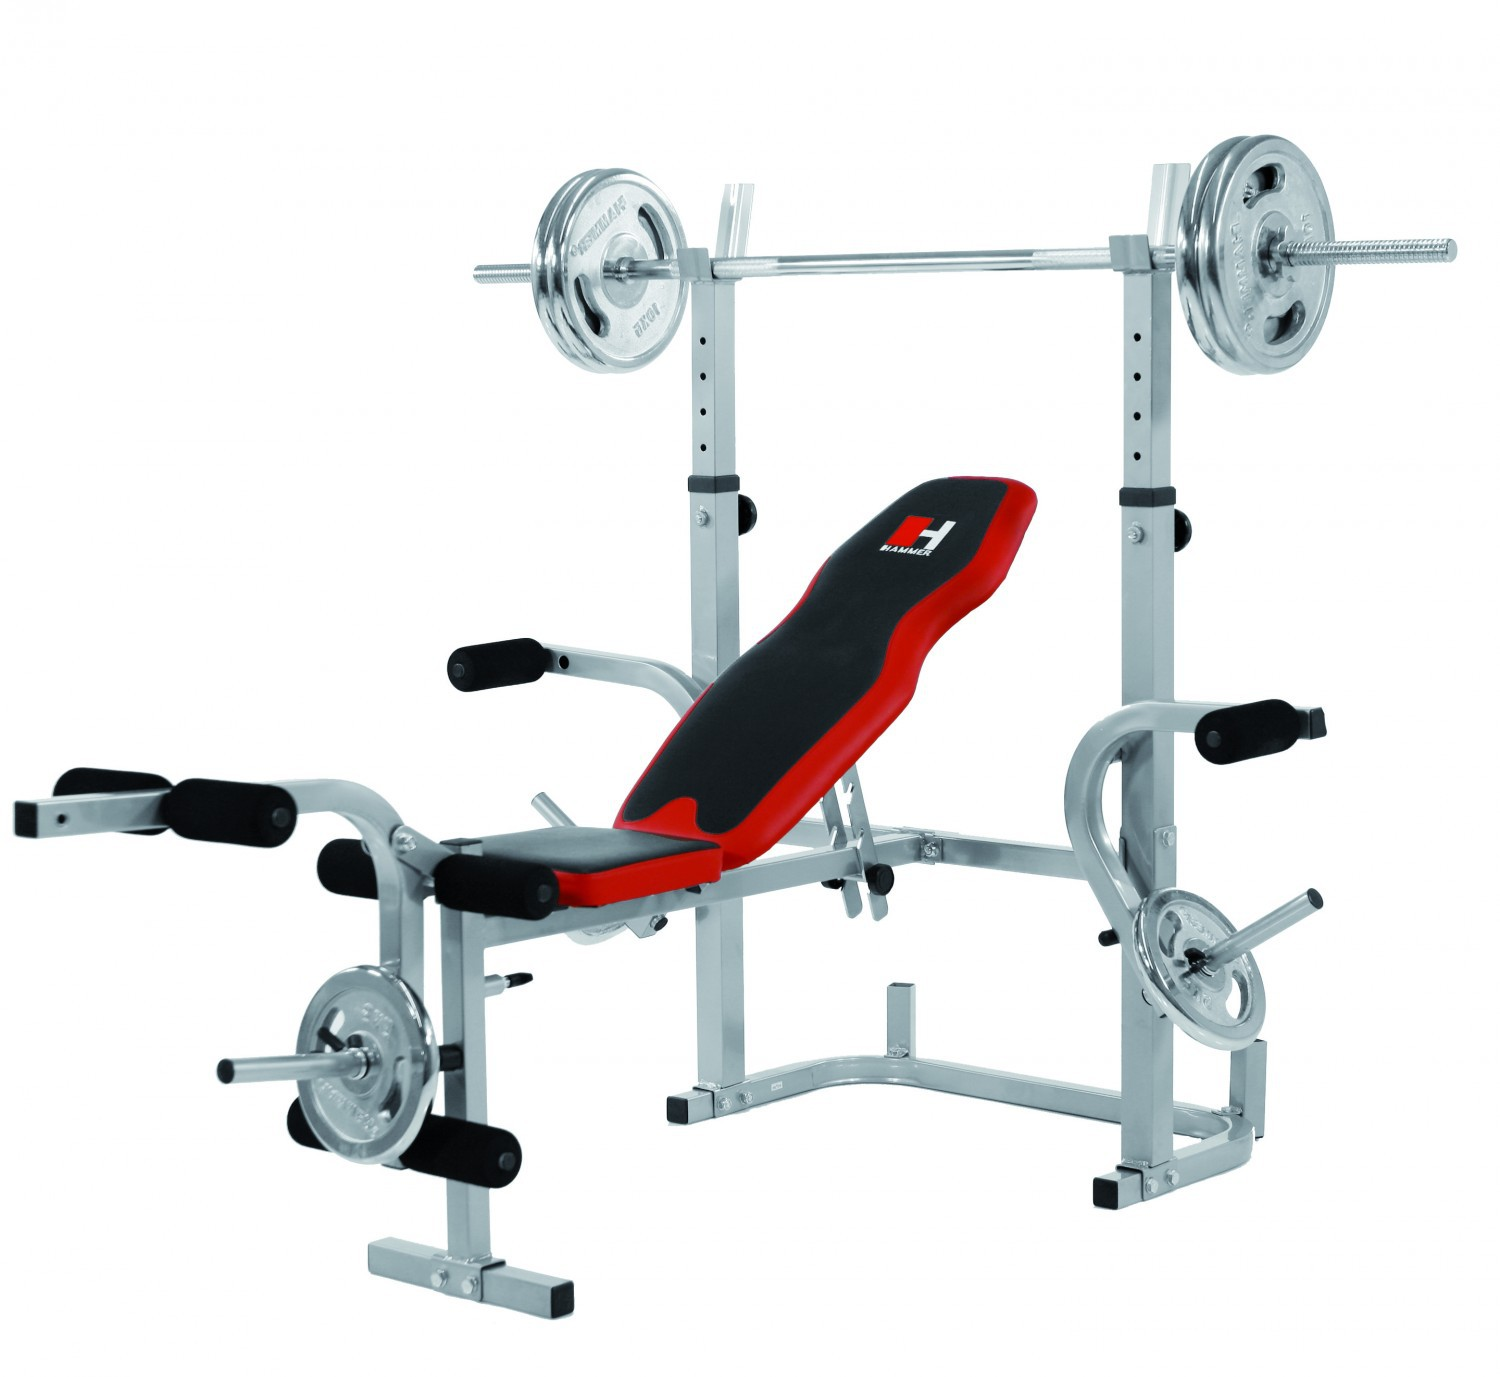 marteau banc de musculation bermuda xt banc plat incline bench musculation. Black Bedroom Furniture Sets. Home Design Ideas